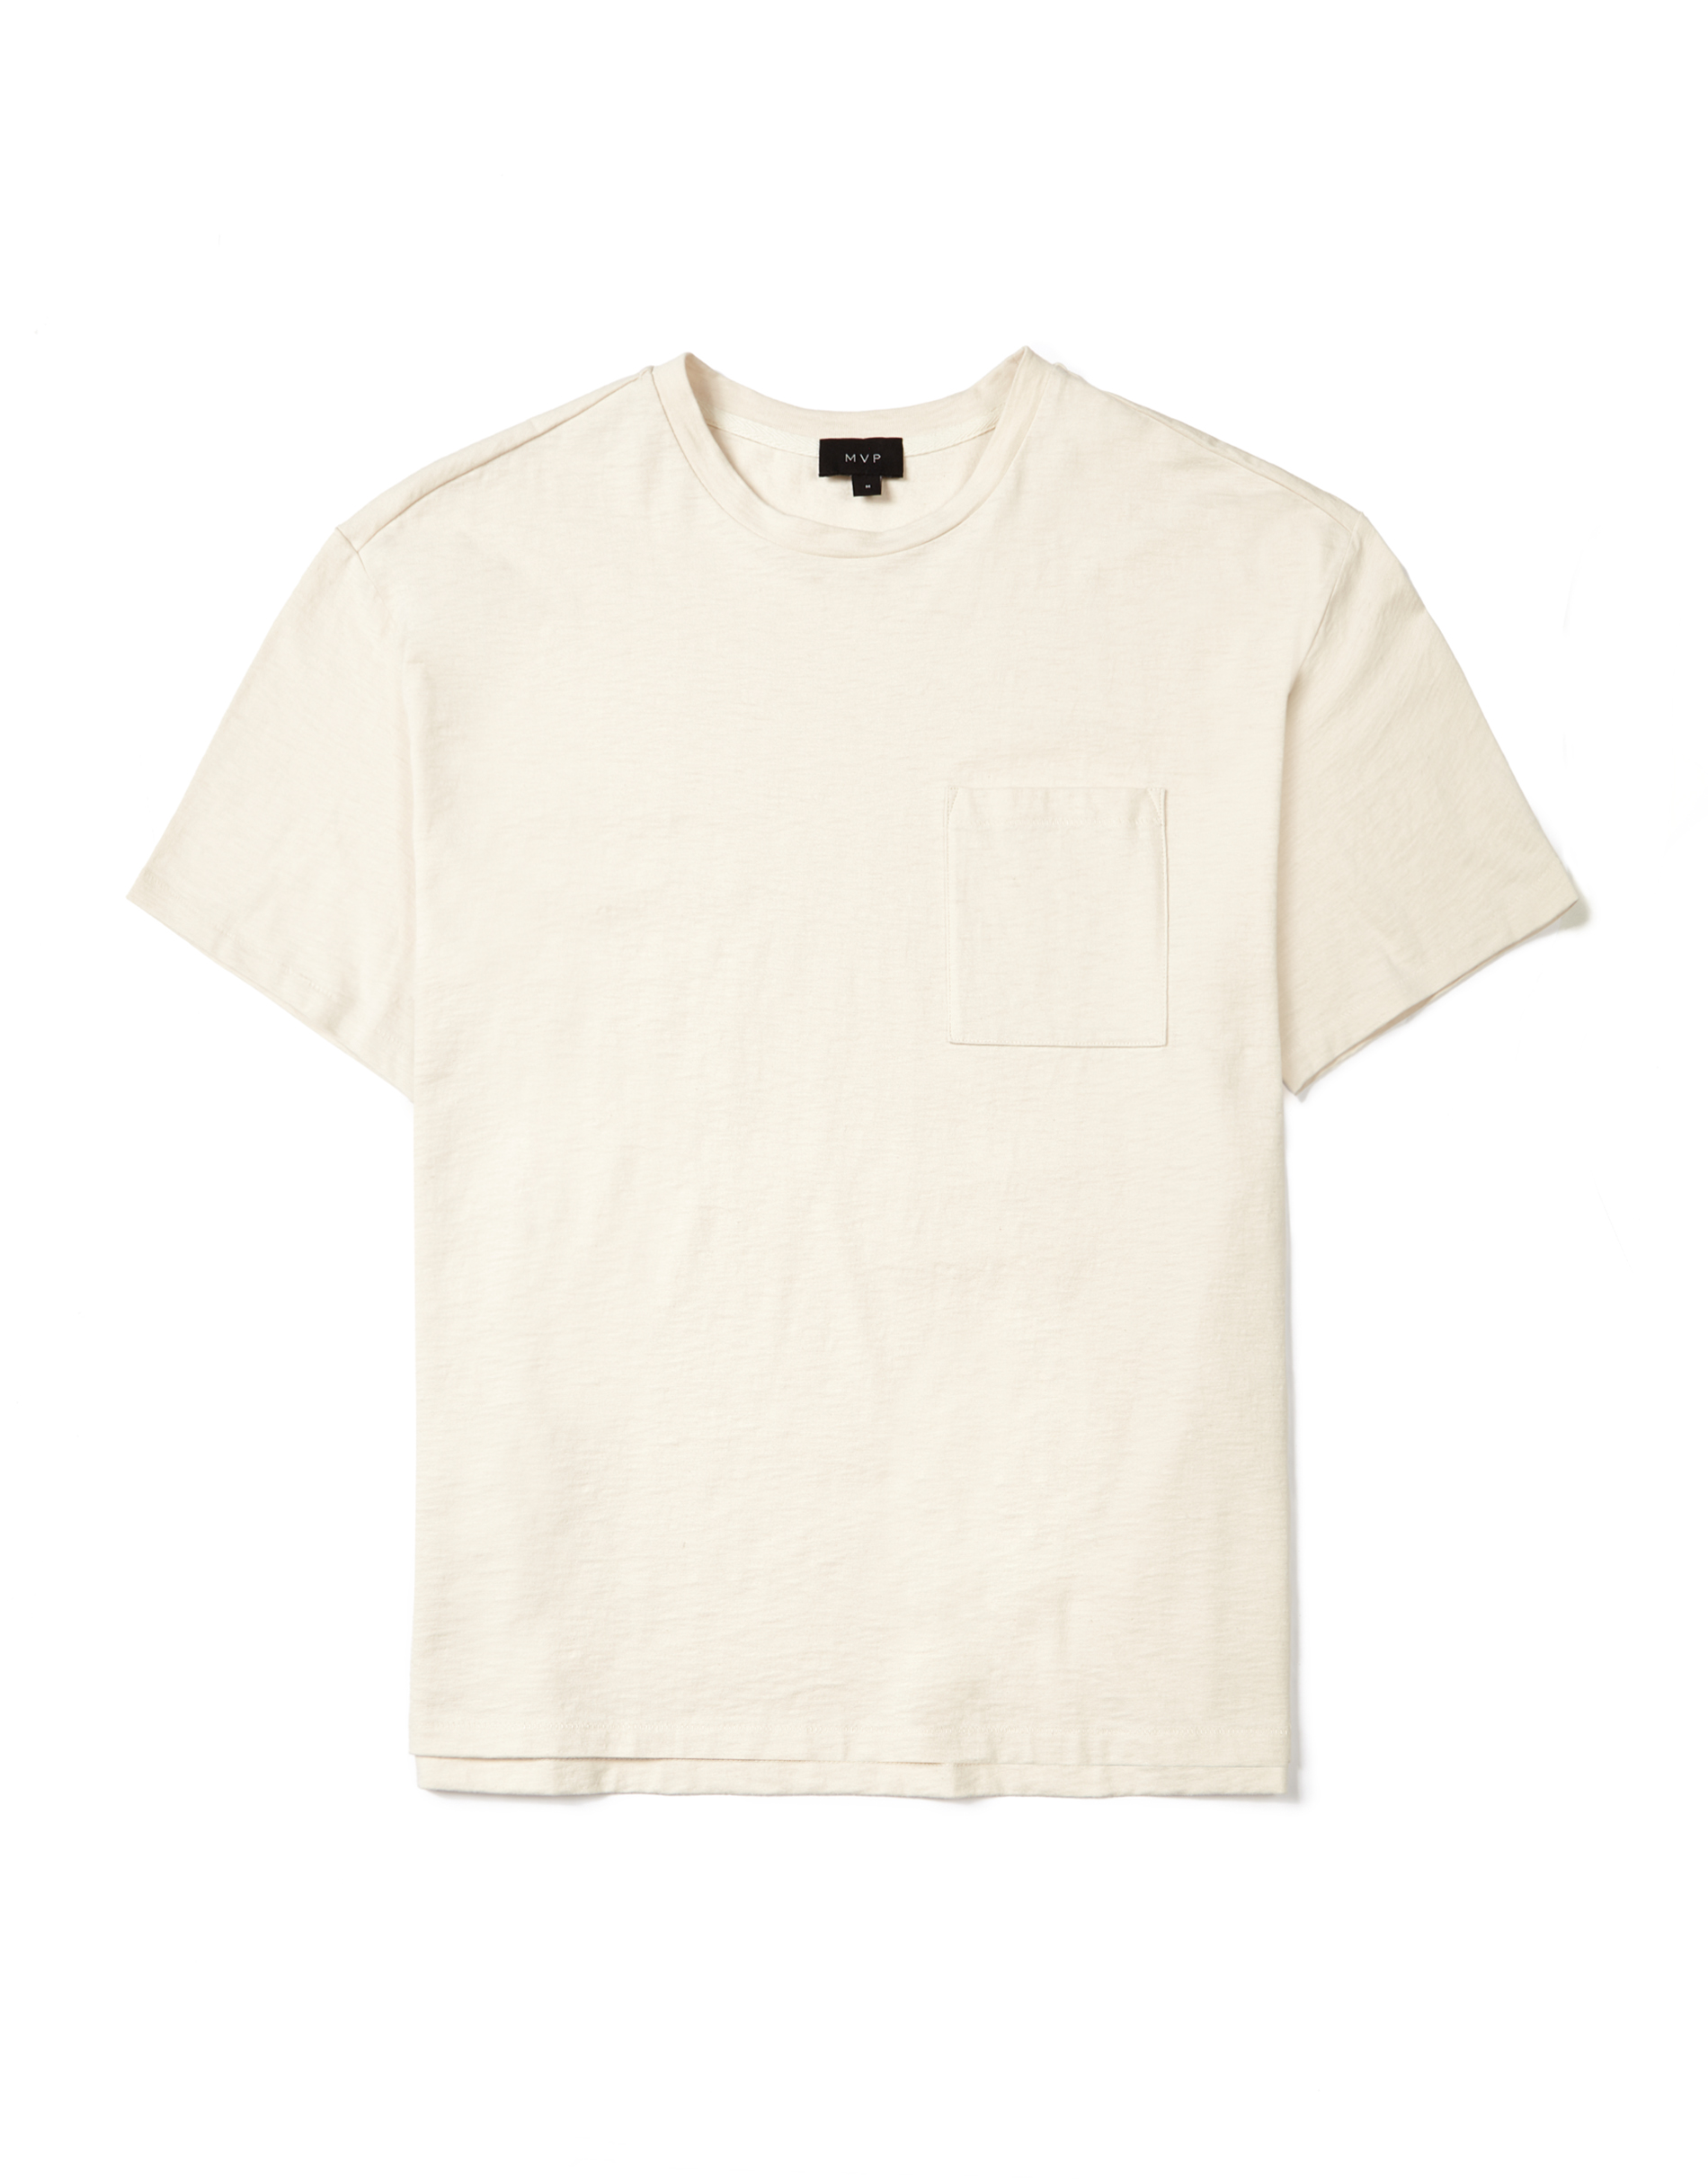 MVP Albion Slub Jersey Crew Neck T-Shirt - Natural White